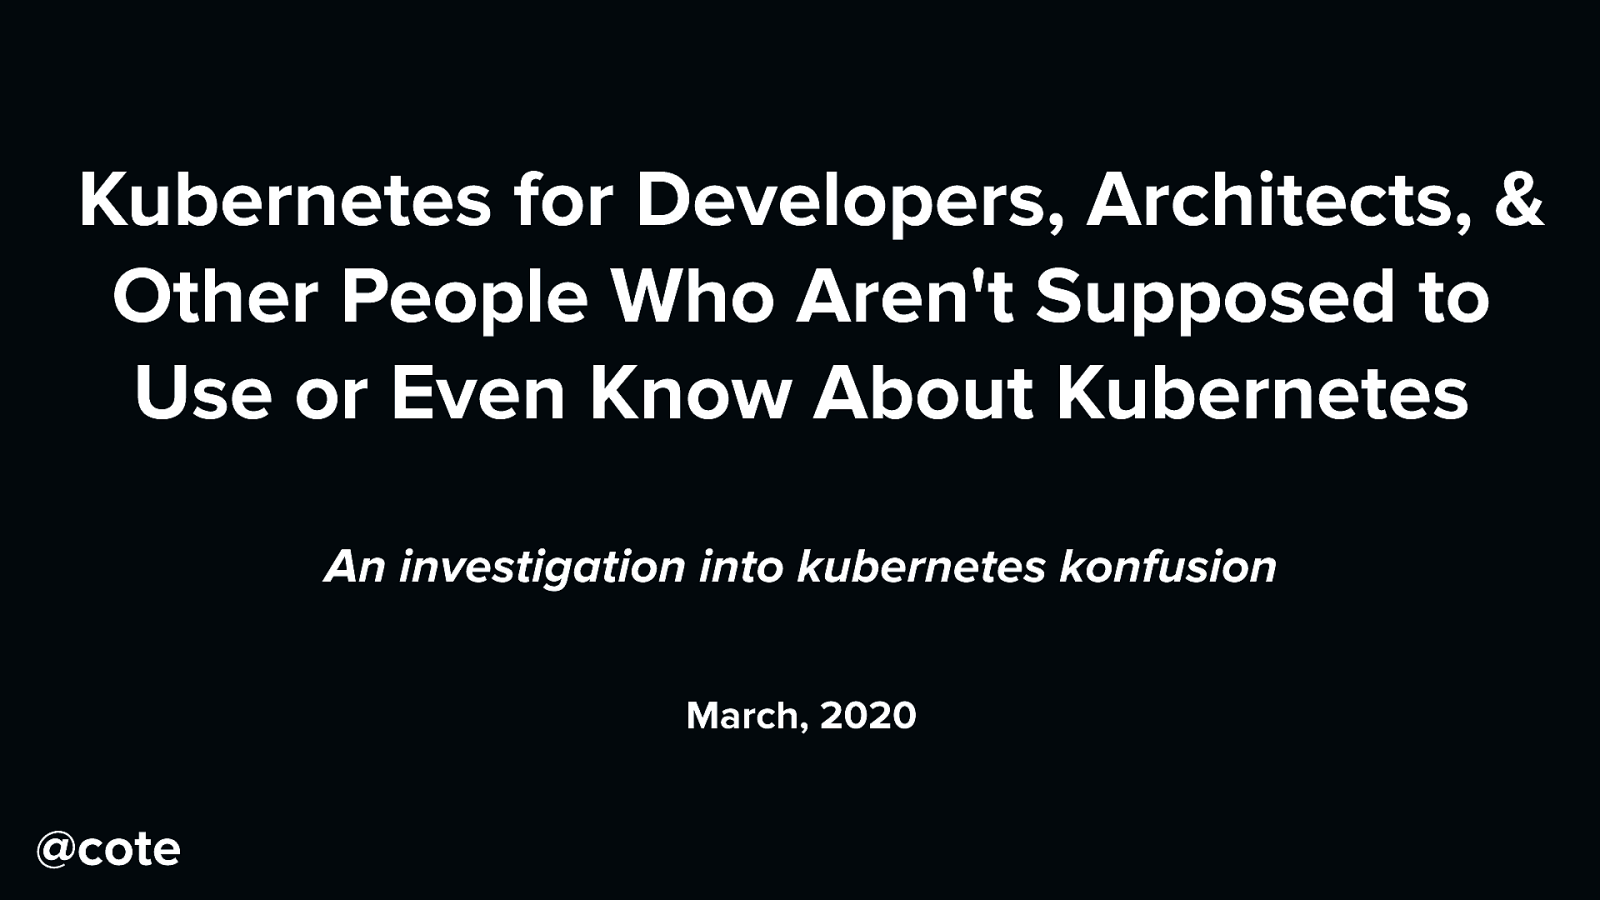 The blinking cursor, or, kubernetes for developers, architects, & other people who aren't supposed to use it